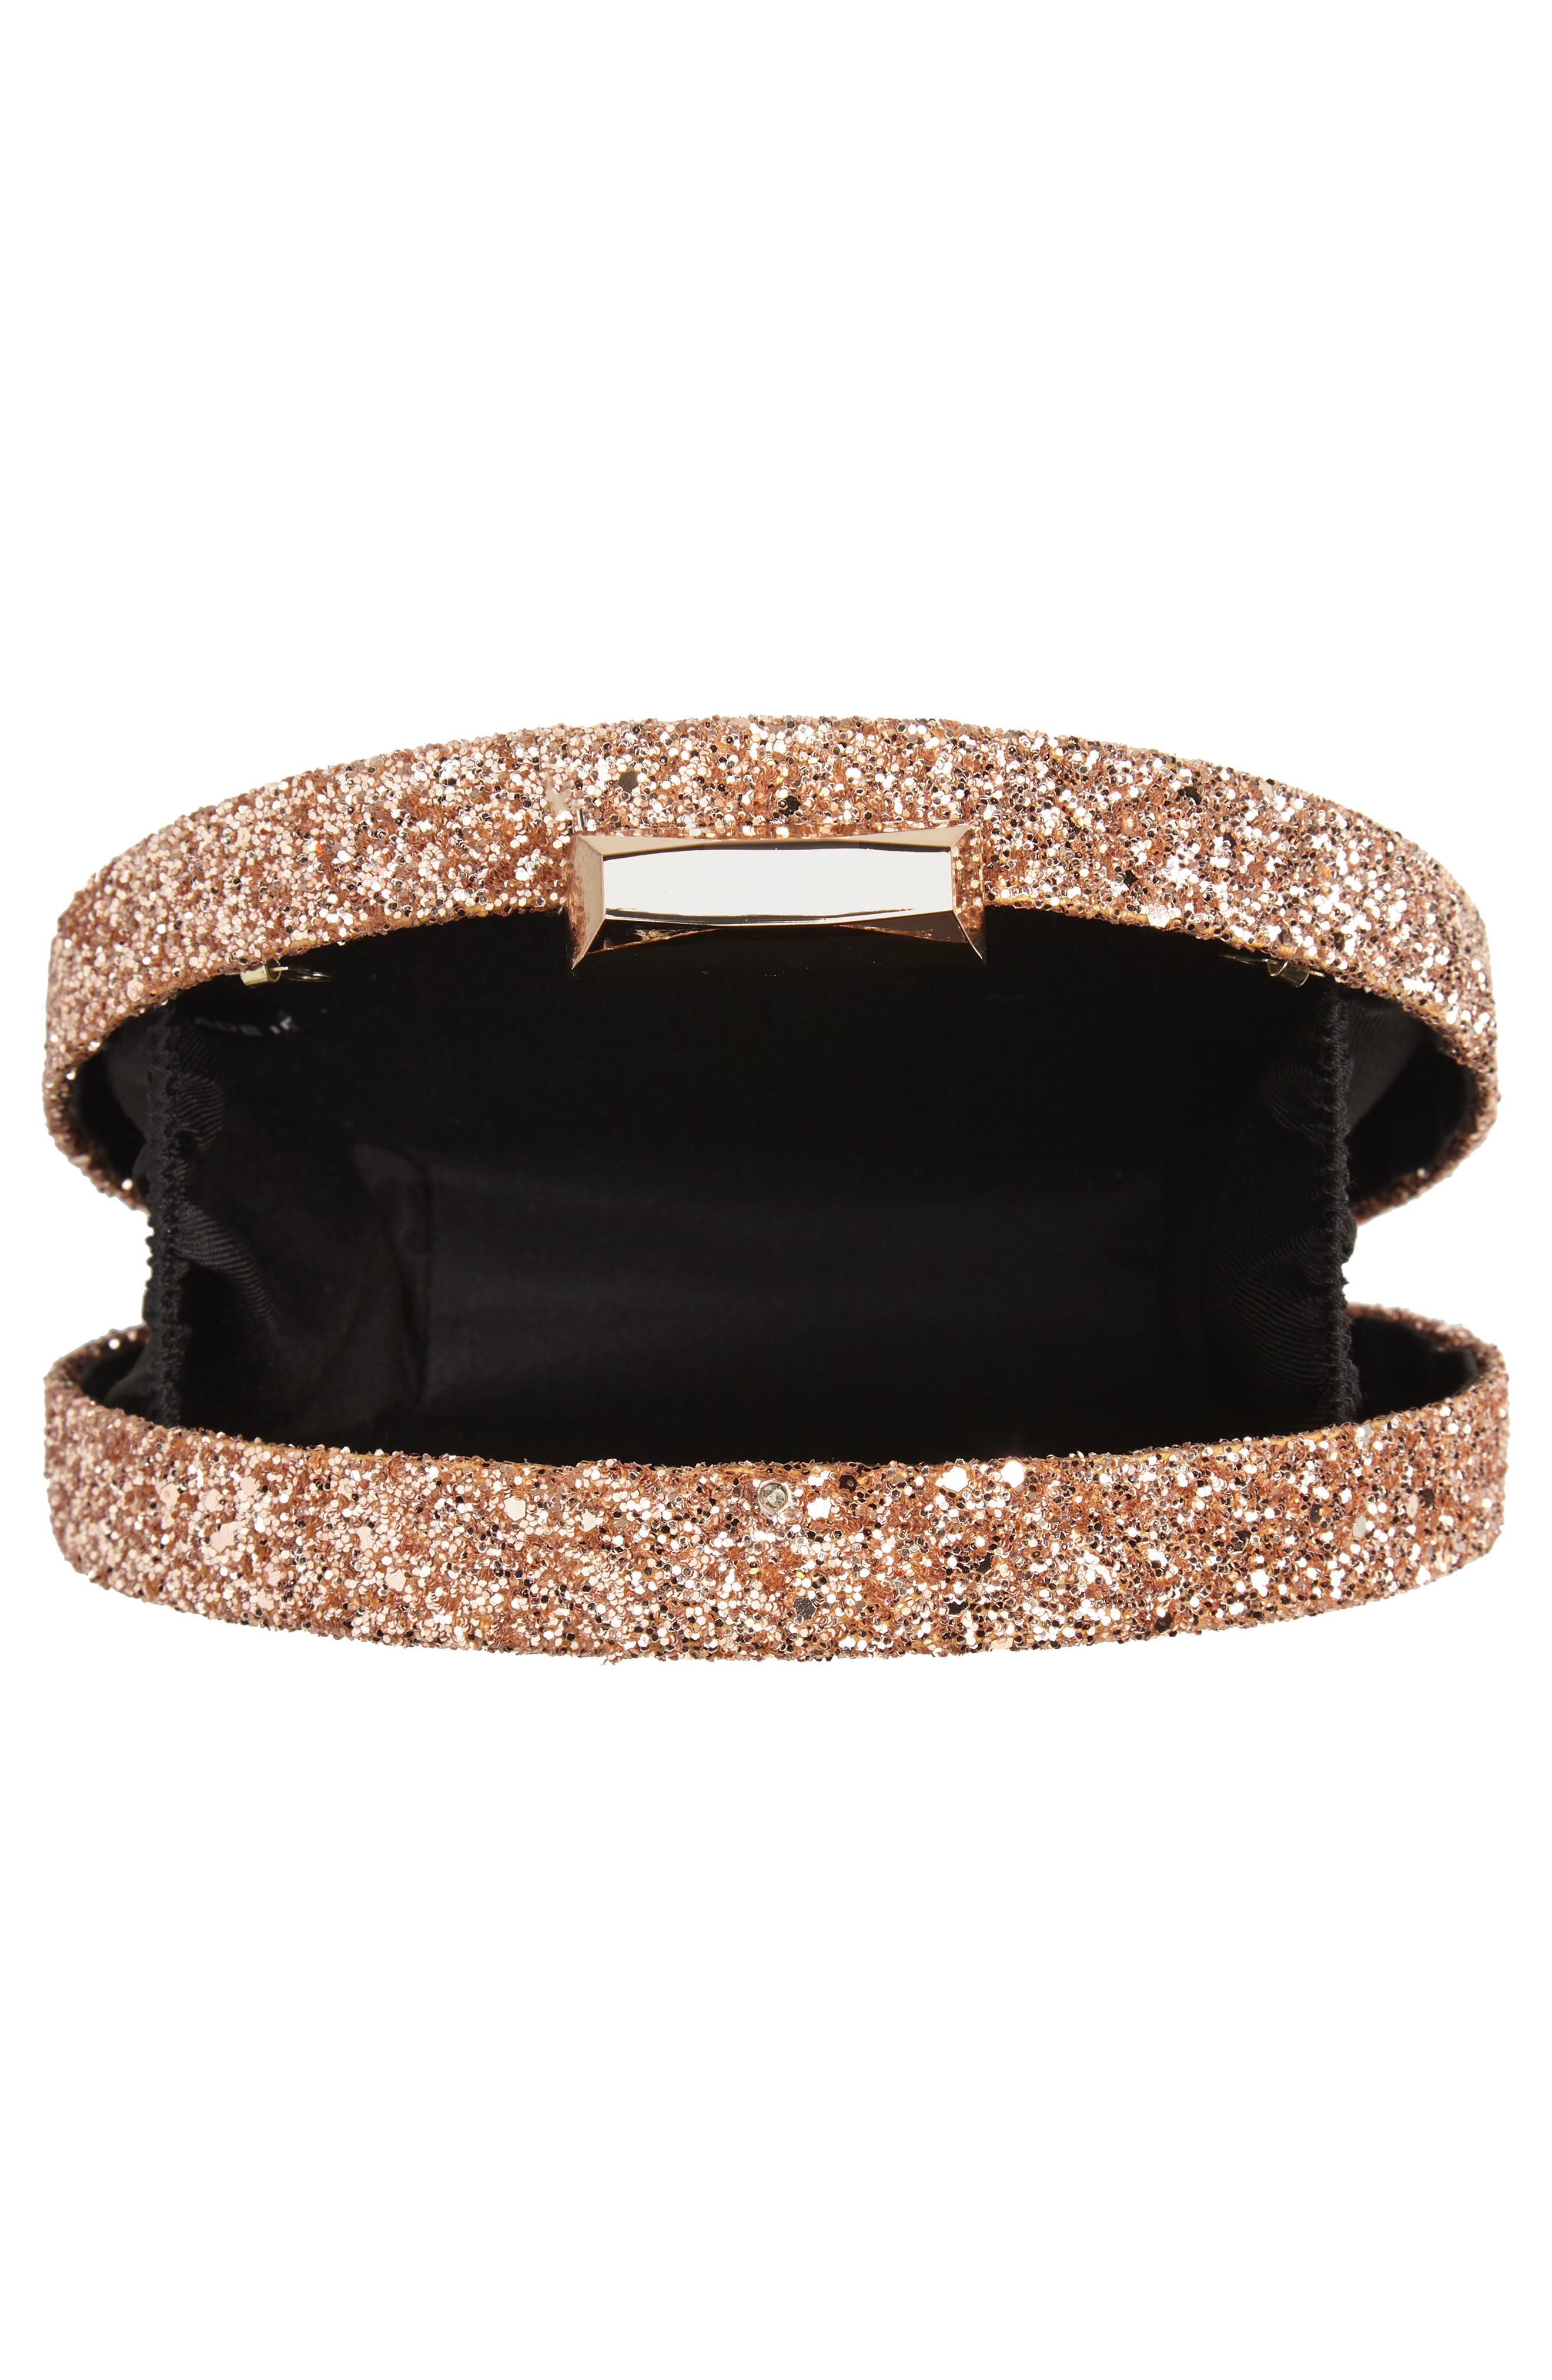 Glitter Clutch,                             Alternate thumbnail 4, color,                             GOLD